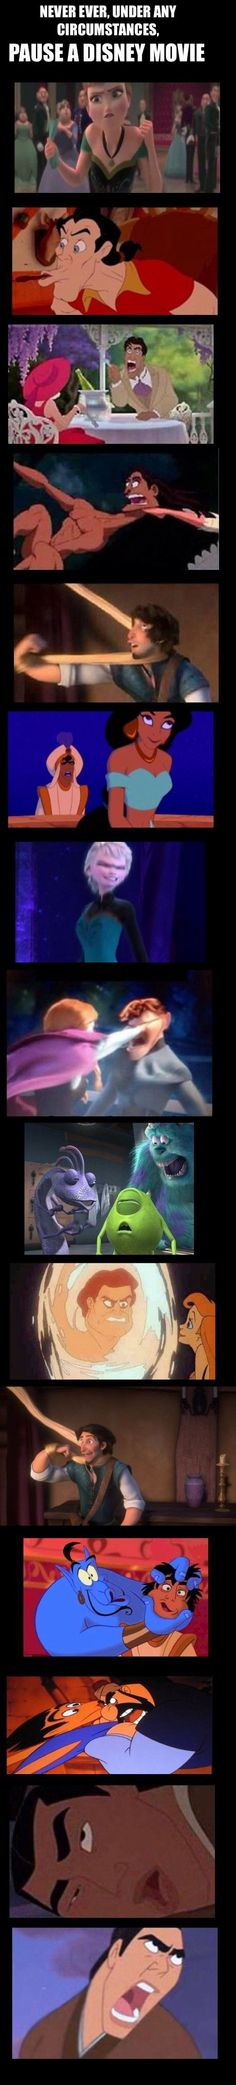 Haha, never ever pause a Disney movie, or else you'll get stuck with these faces! :)